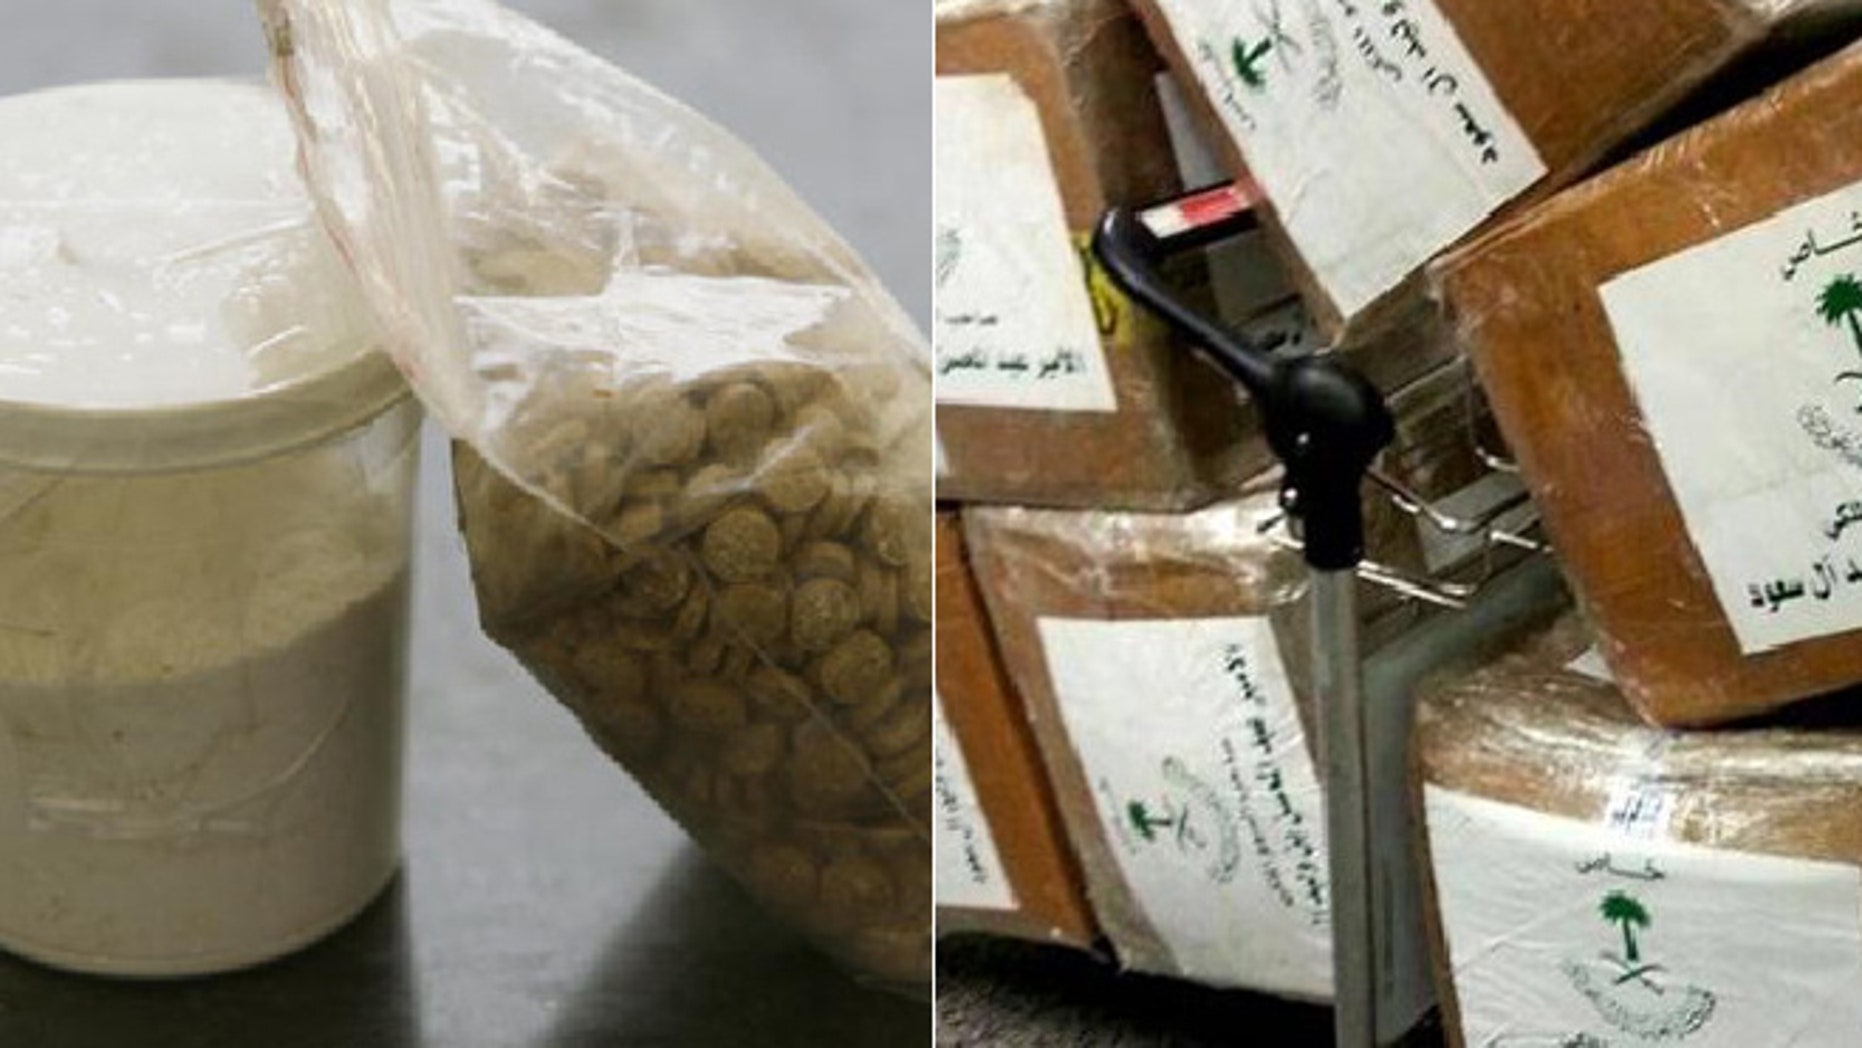 Abd al-Muhsen bin Walid bin Abd al-Aziz Al Saud was detained at an airport in the Lebanese capital, Beirut, while in possession of 24 bags and eight suitcases full of narcotics.